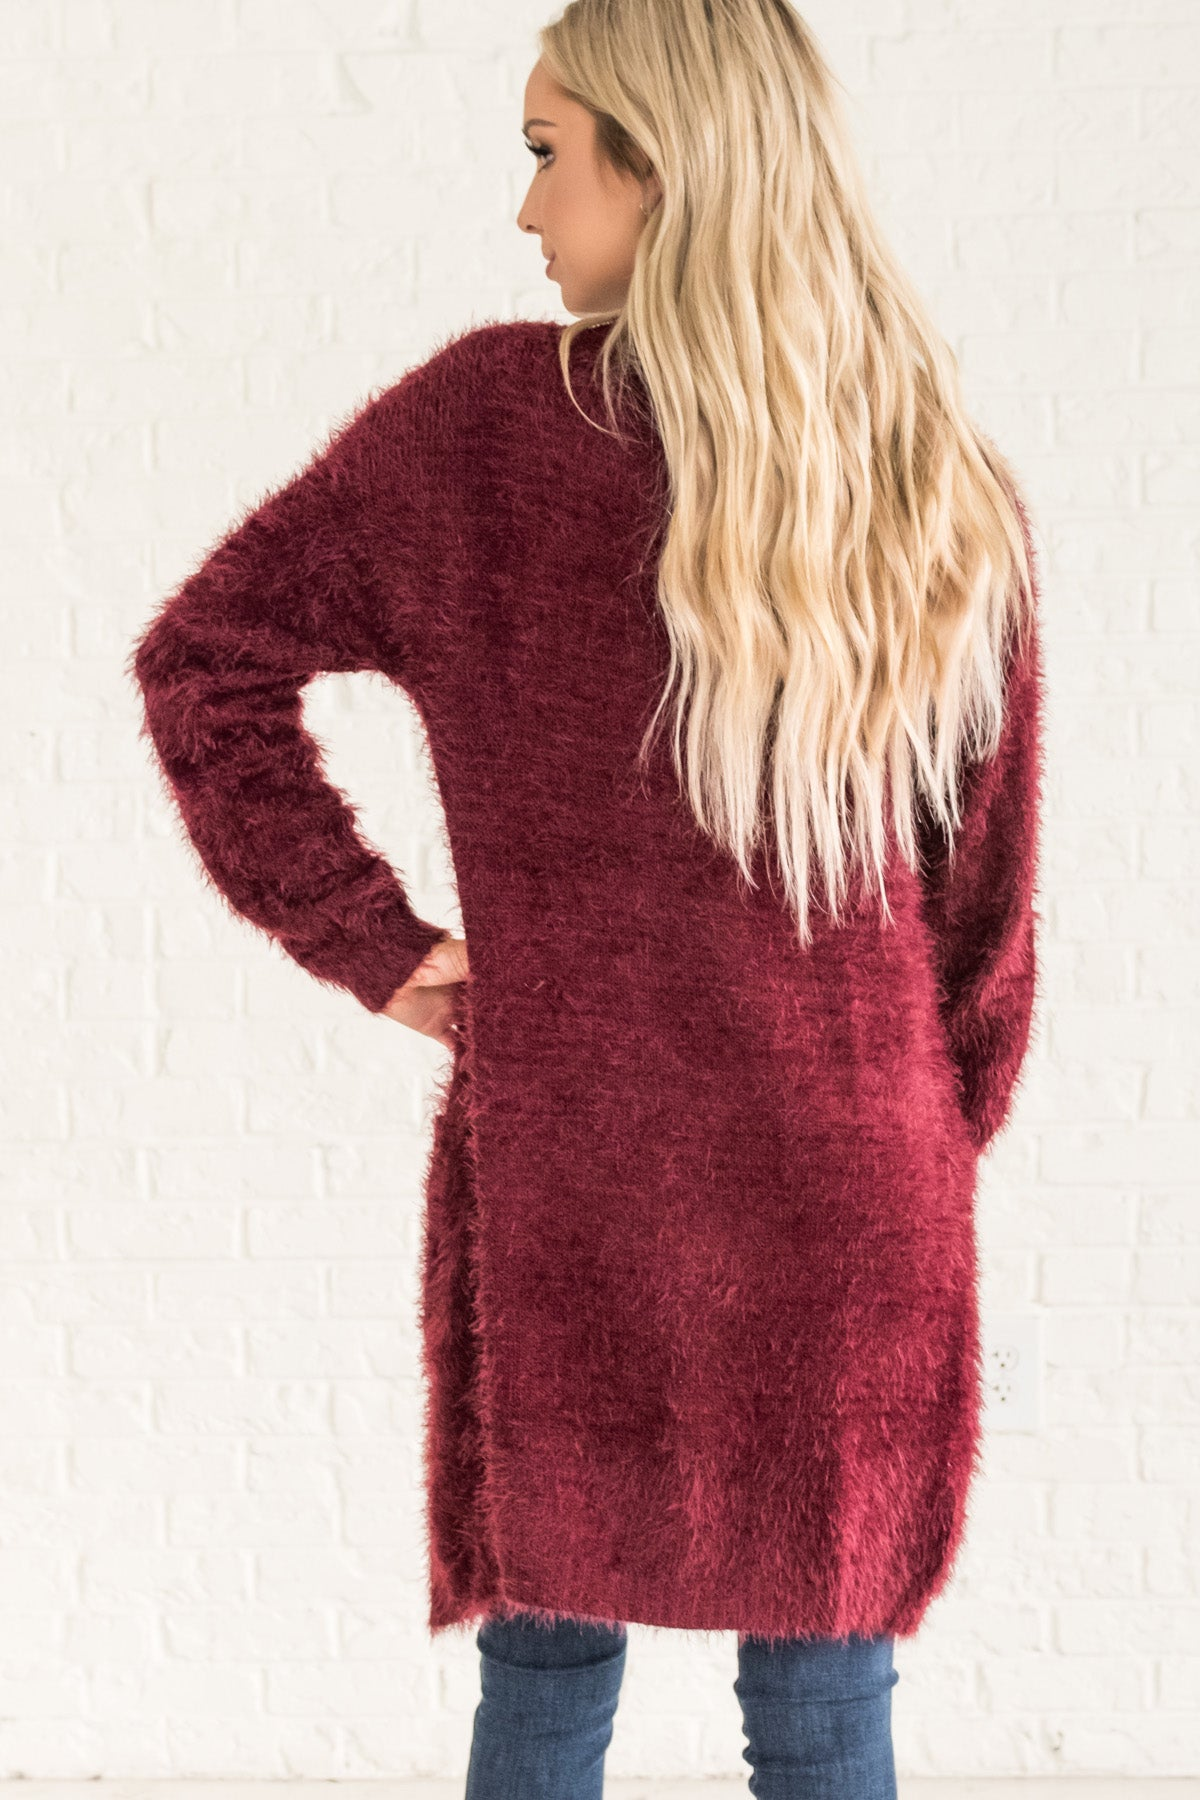 4f739aaa83 Burgundy Red Cozy Warm Clothing for Winter Eyelash Knit Fuzzy Long Cardigan  Sweaters